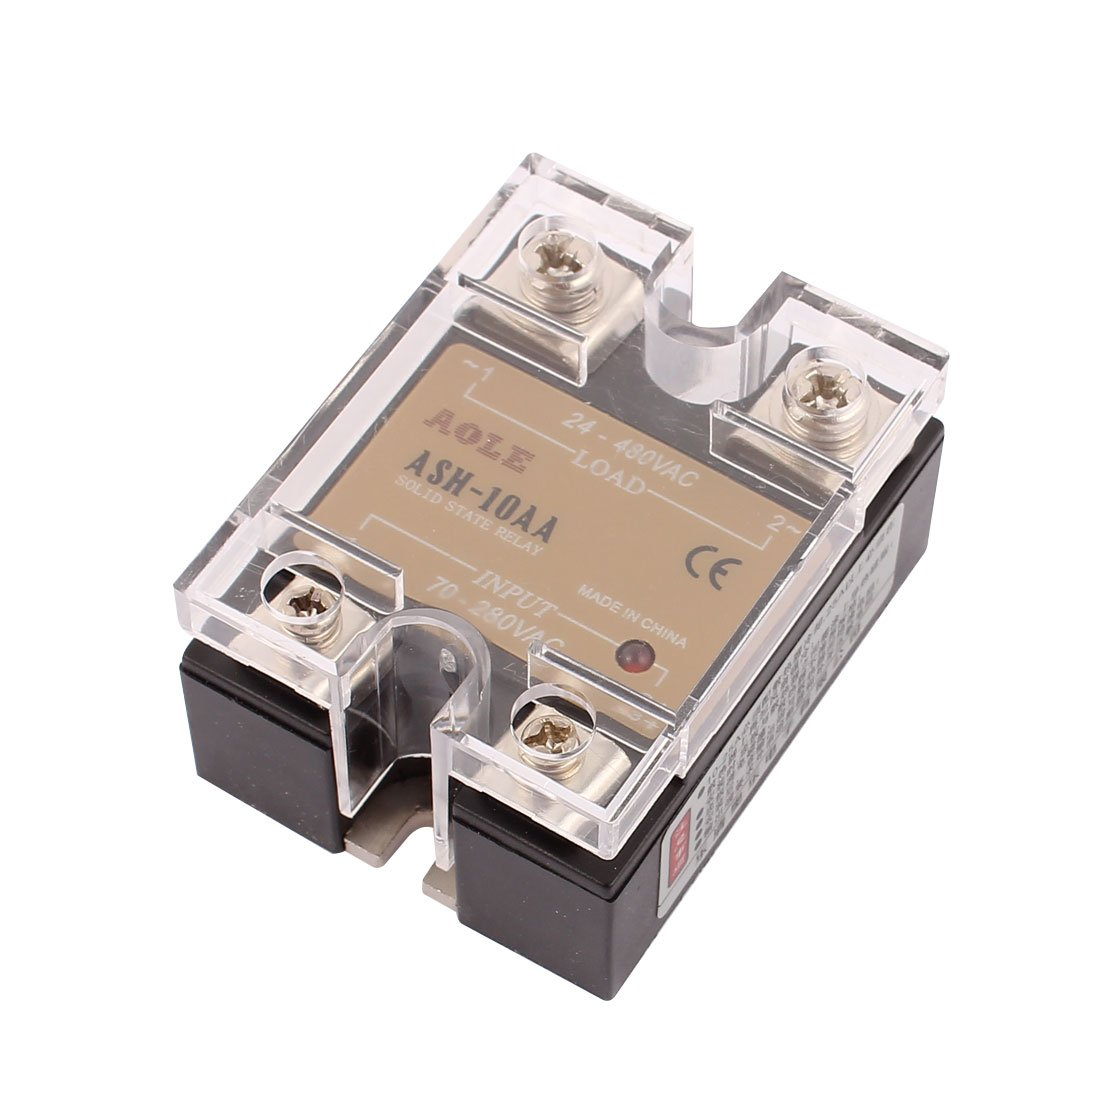 Uxcell Ash 10aa 70 280vac To 480vac 10a Single Phase Solid State Relay Leakage Ac Authorized Home Improvement